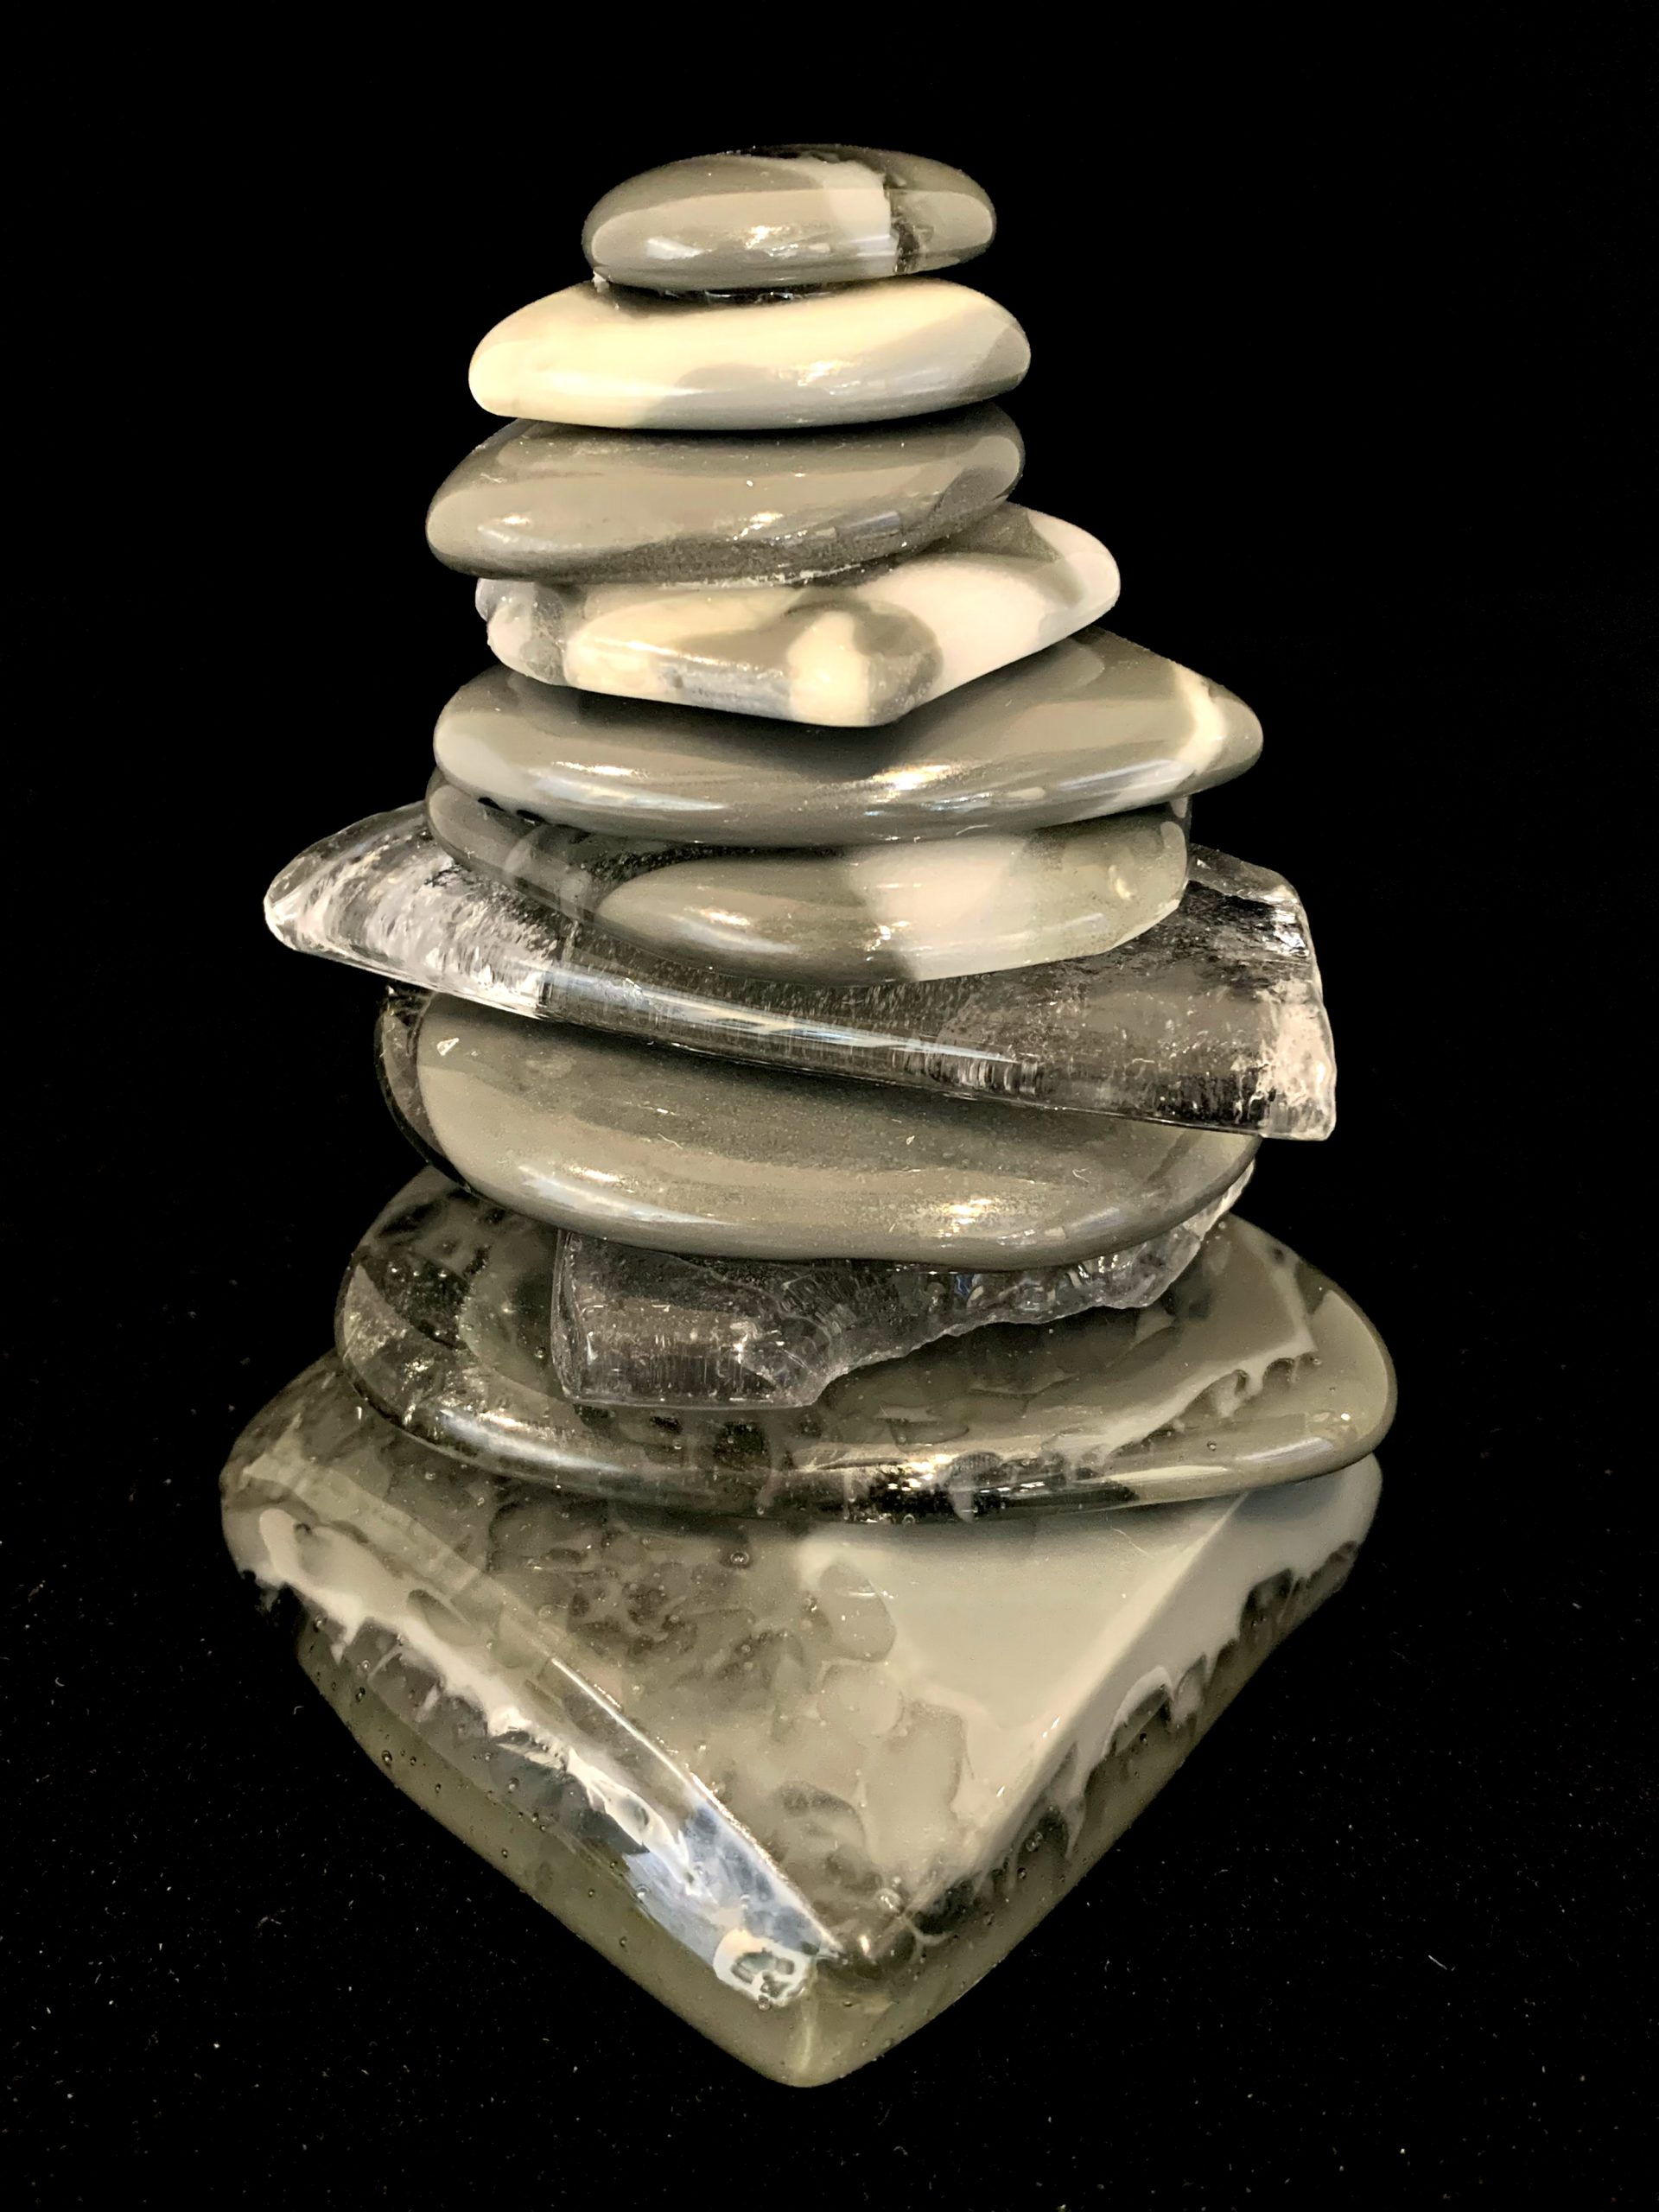 Rocky Mountain Cairn 73, cast glass sculpture by Heather Cuell | Effusion Art Gallery + Cast Glass Studio, Invermere BC